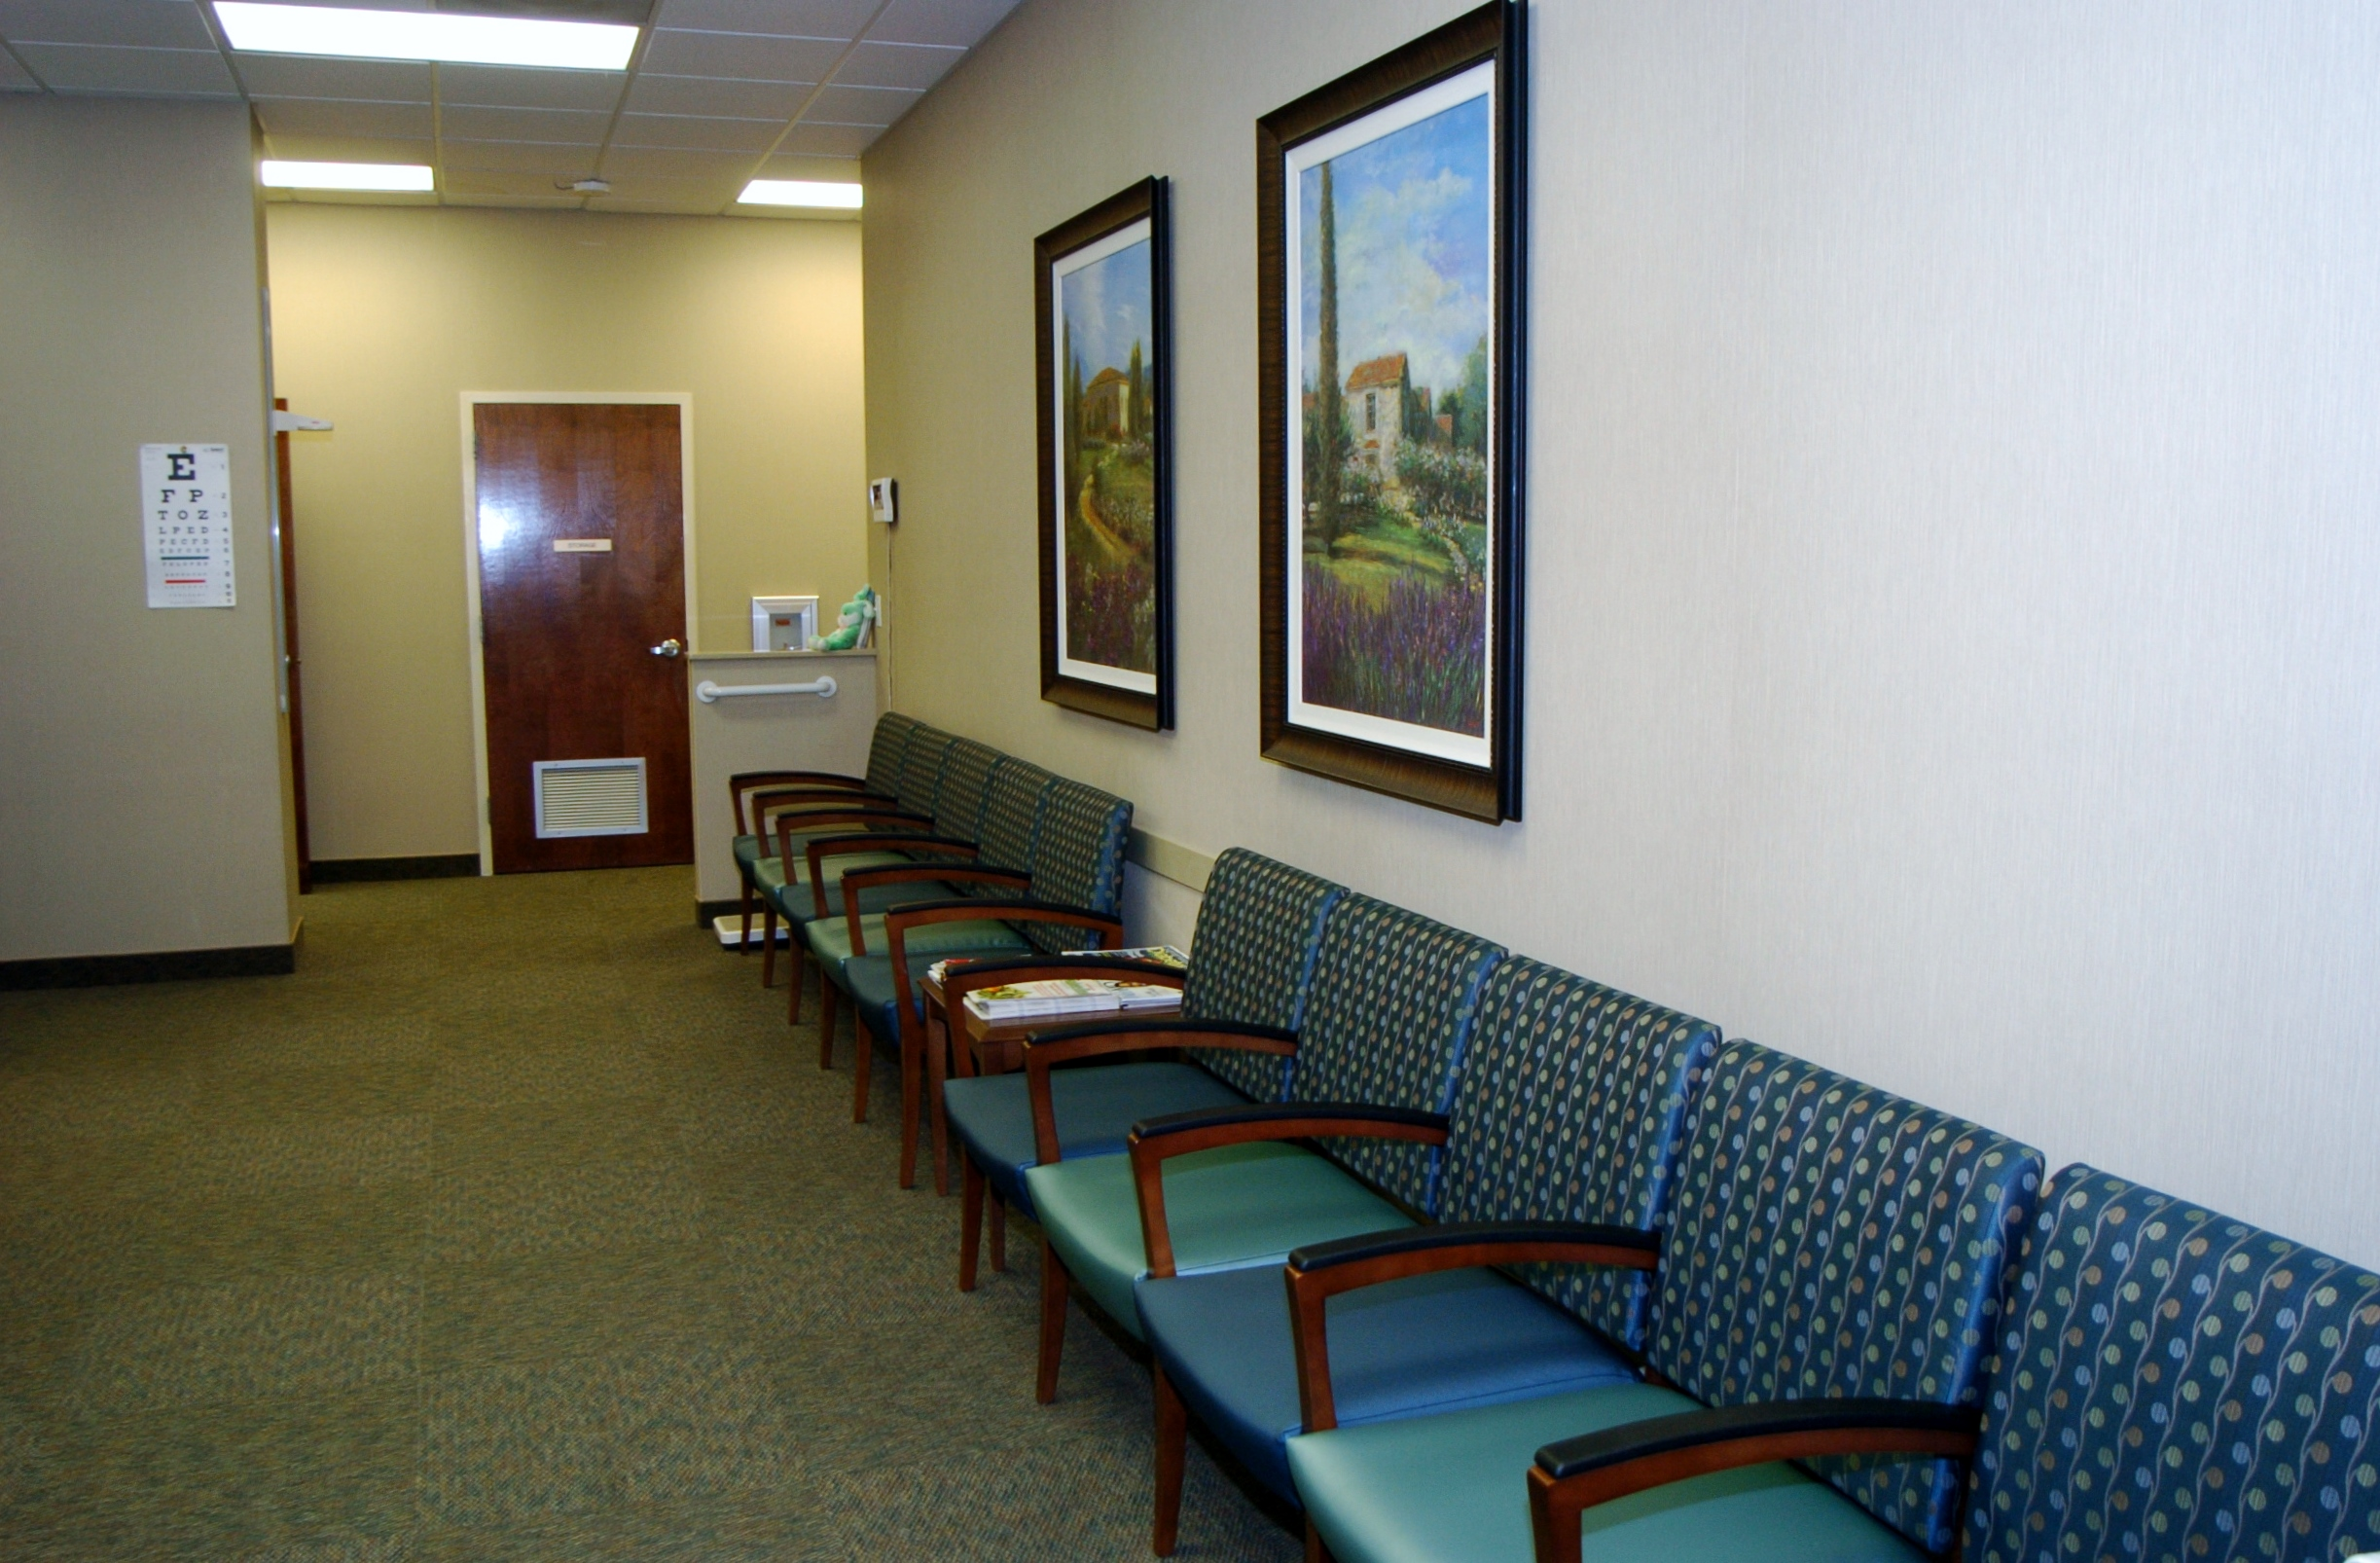 Guilford Medical Associates waiting area image